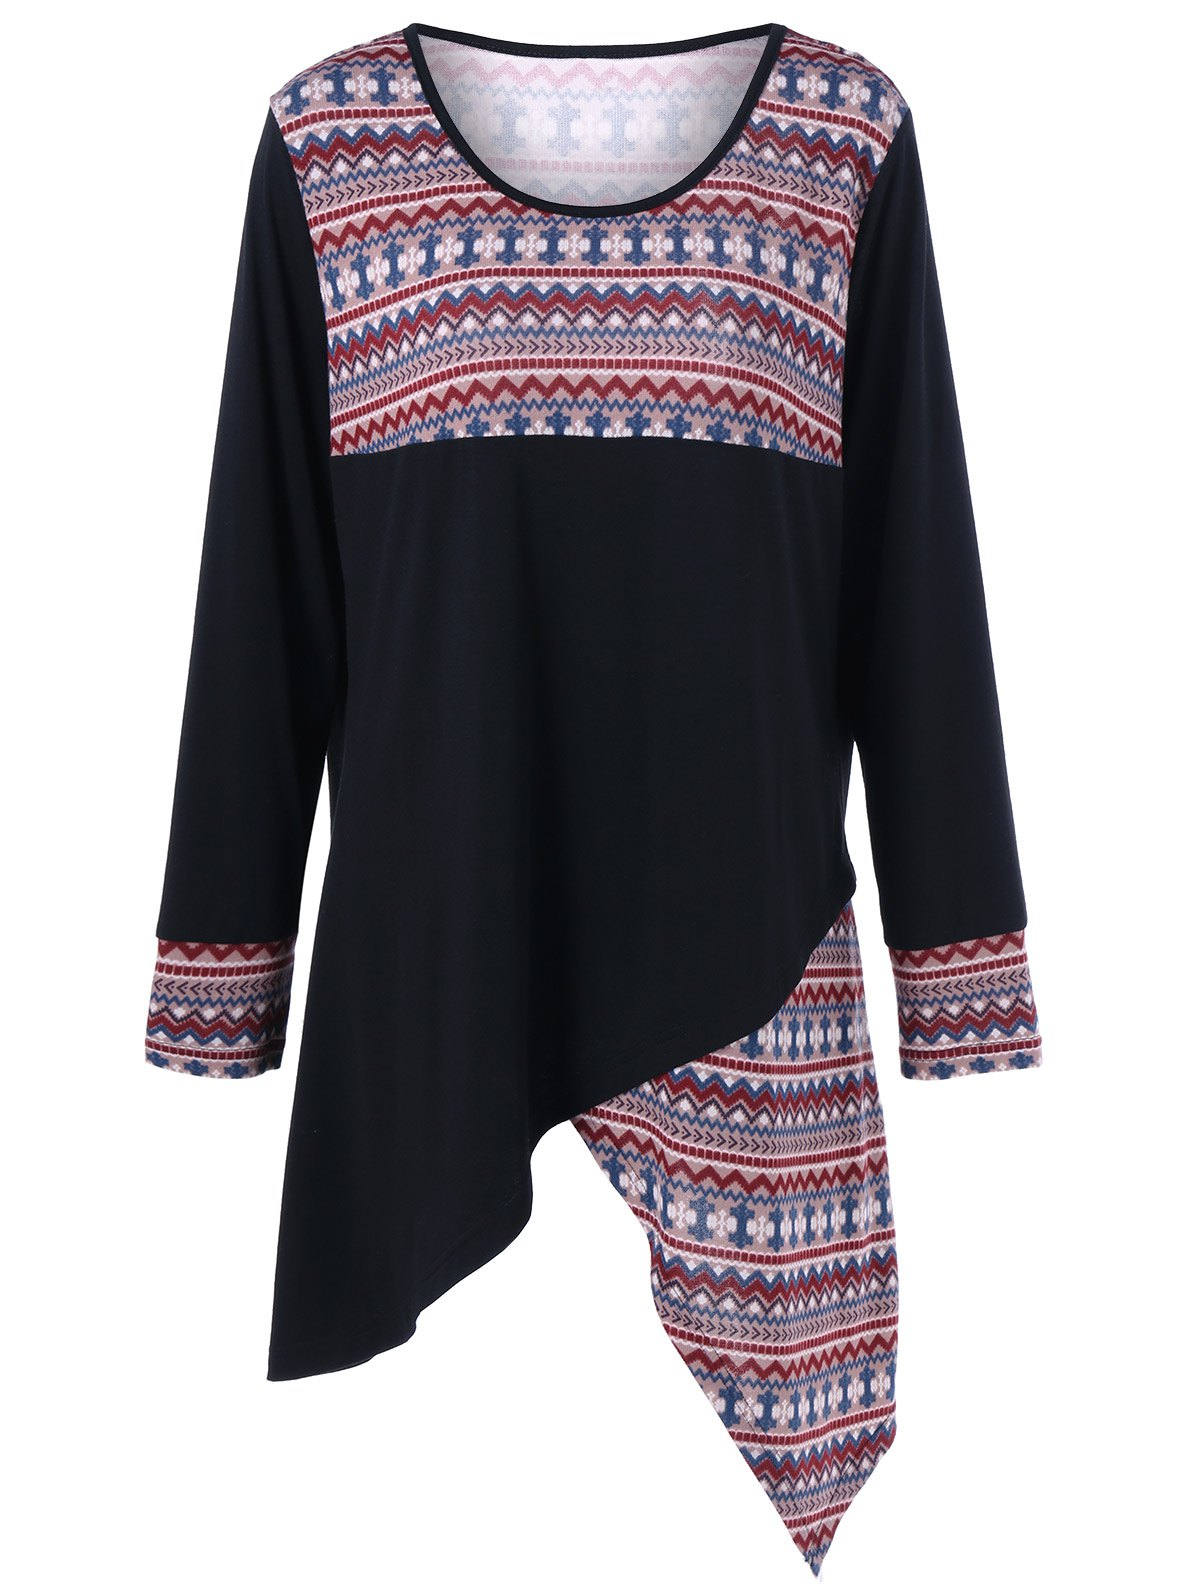 Tribal Print Plus Size Asymmetric T-Shirt - COLORMIX 3XL